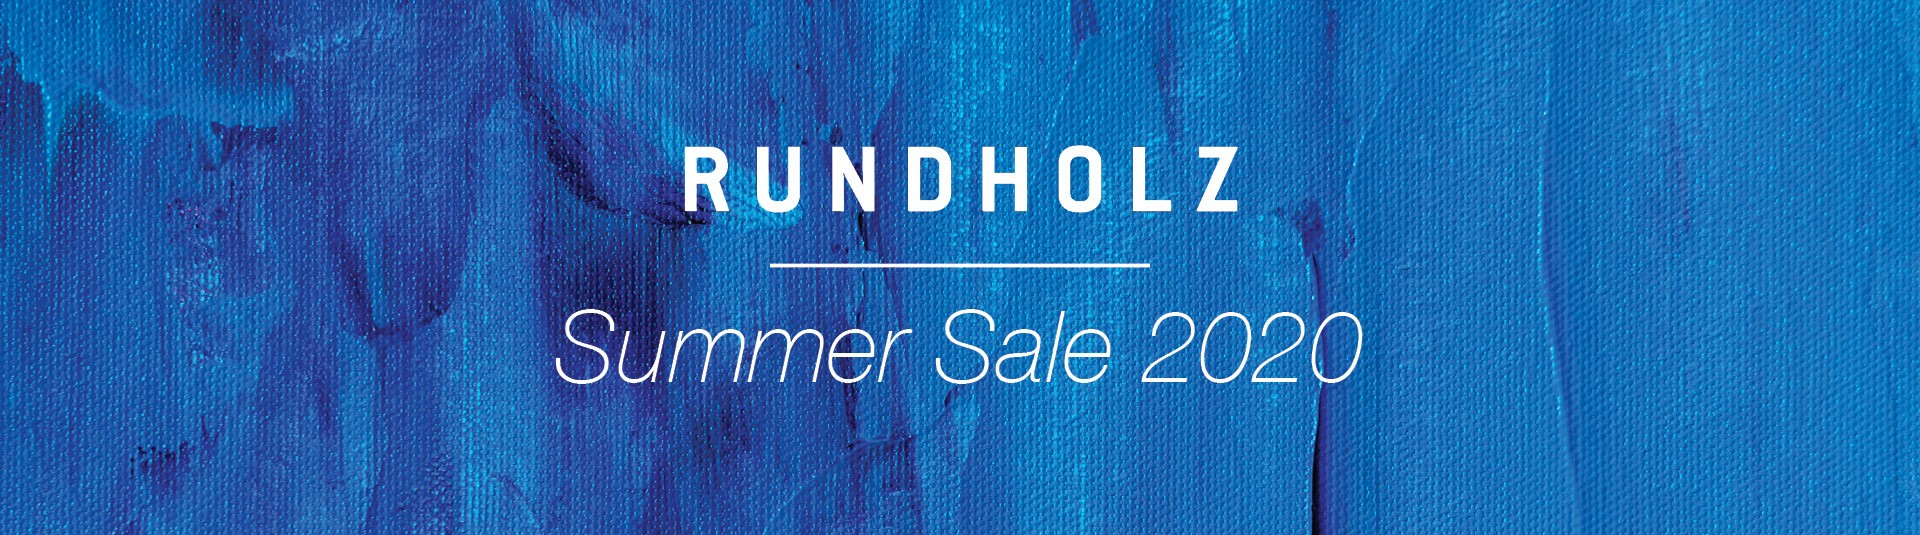 Rundholz Summer Sale 2020